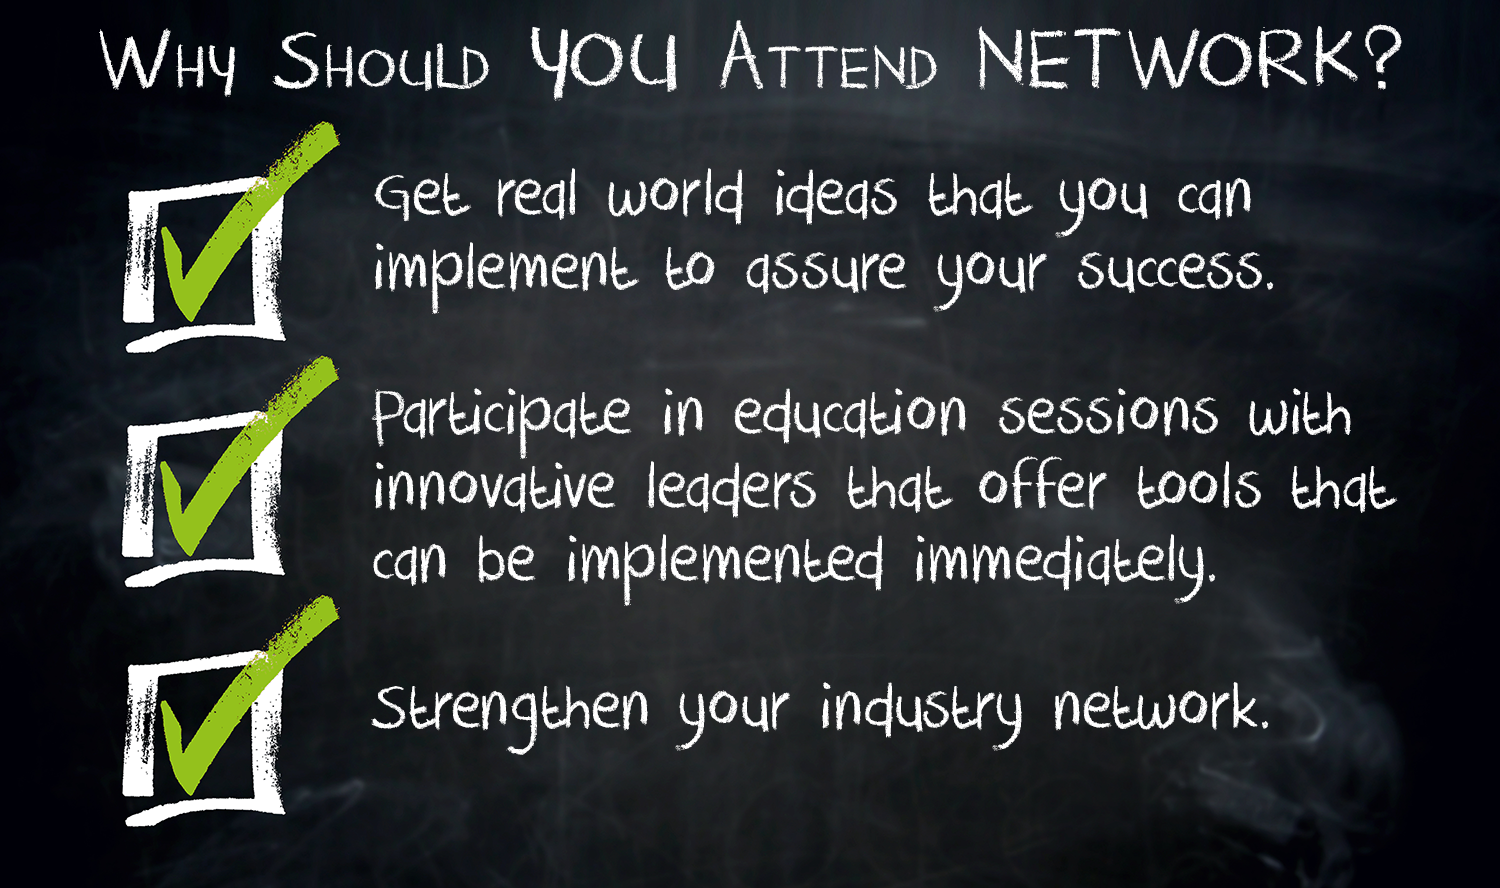 Reasons-to-Attend-NETWORK-SMALL637225713737597231